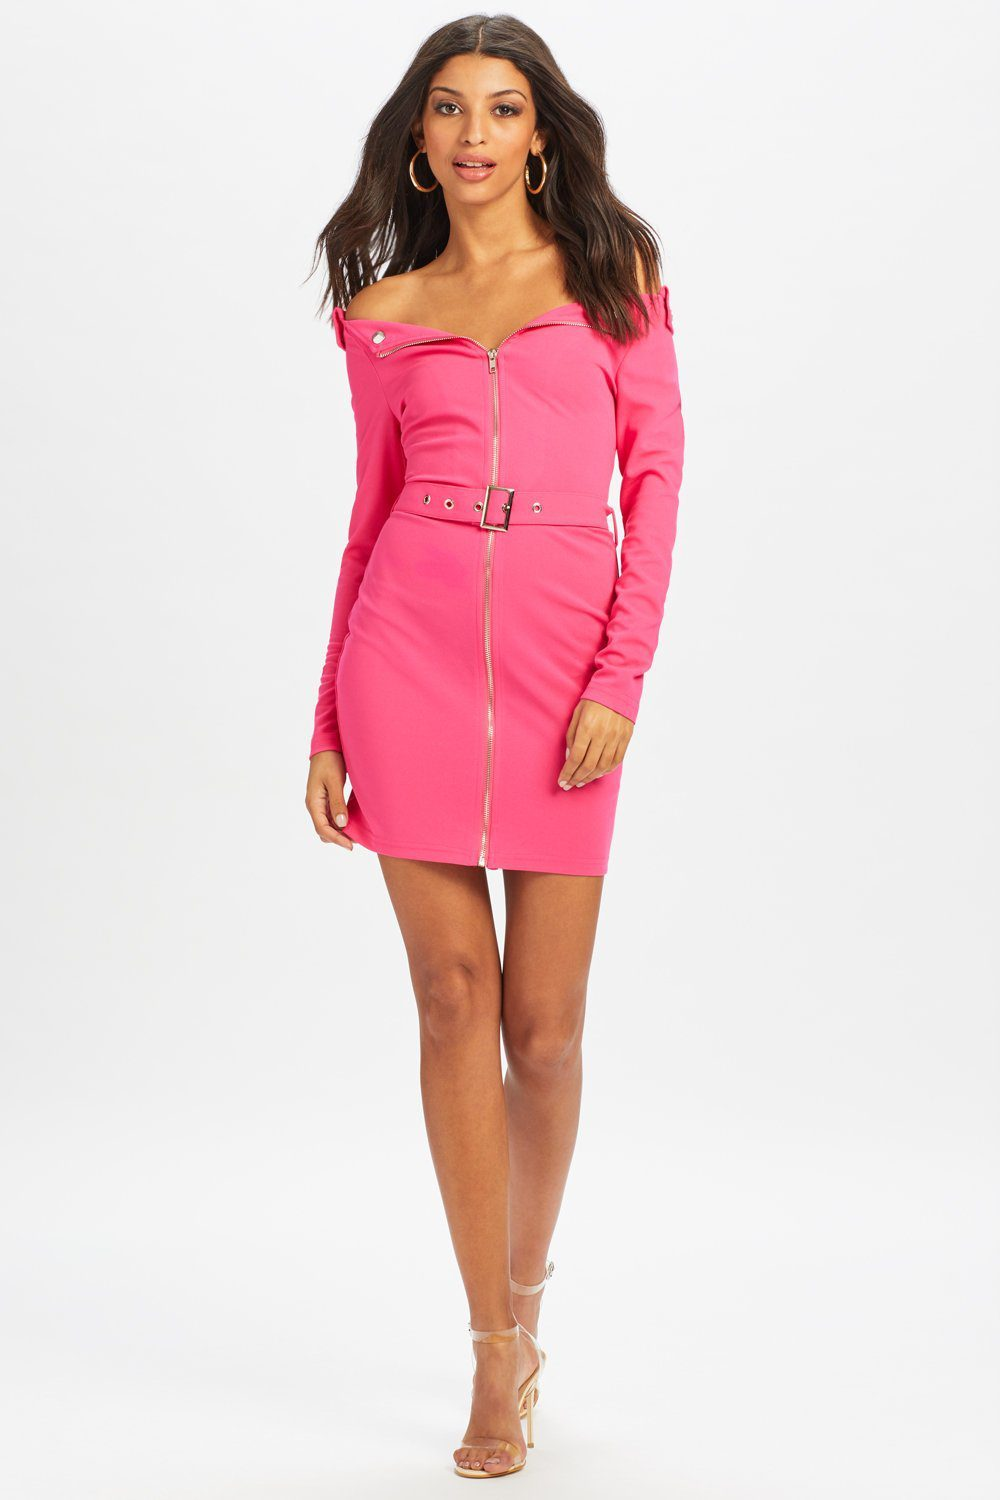 U.MAY2019 Demi Biker Mini Dress Pink